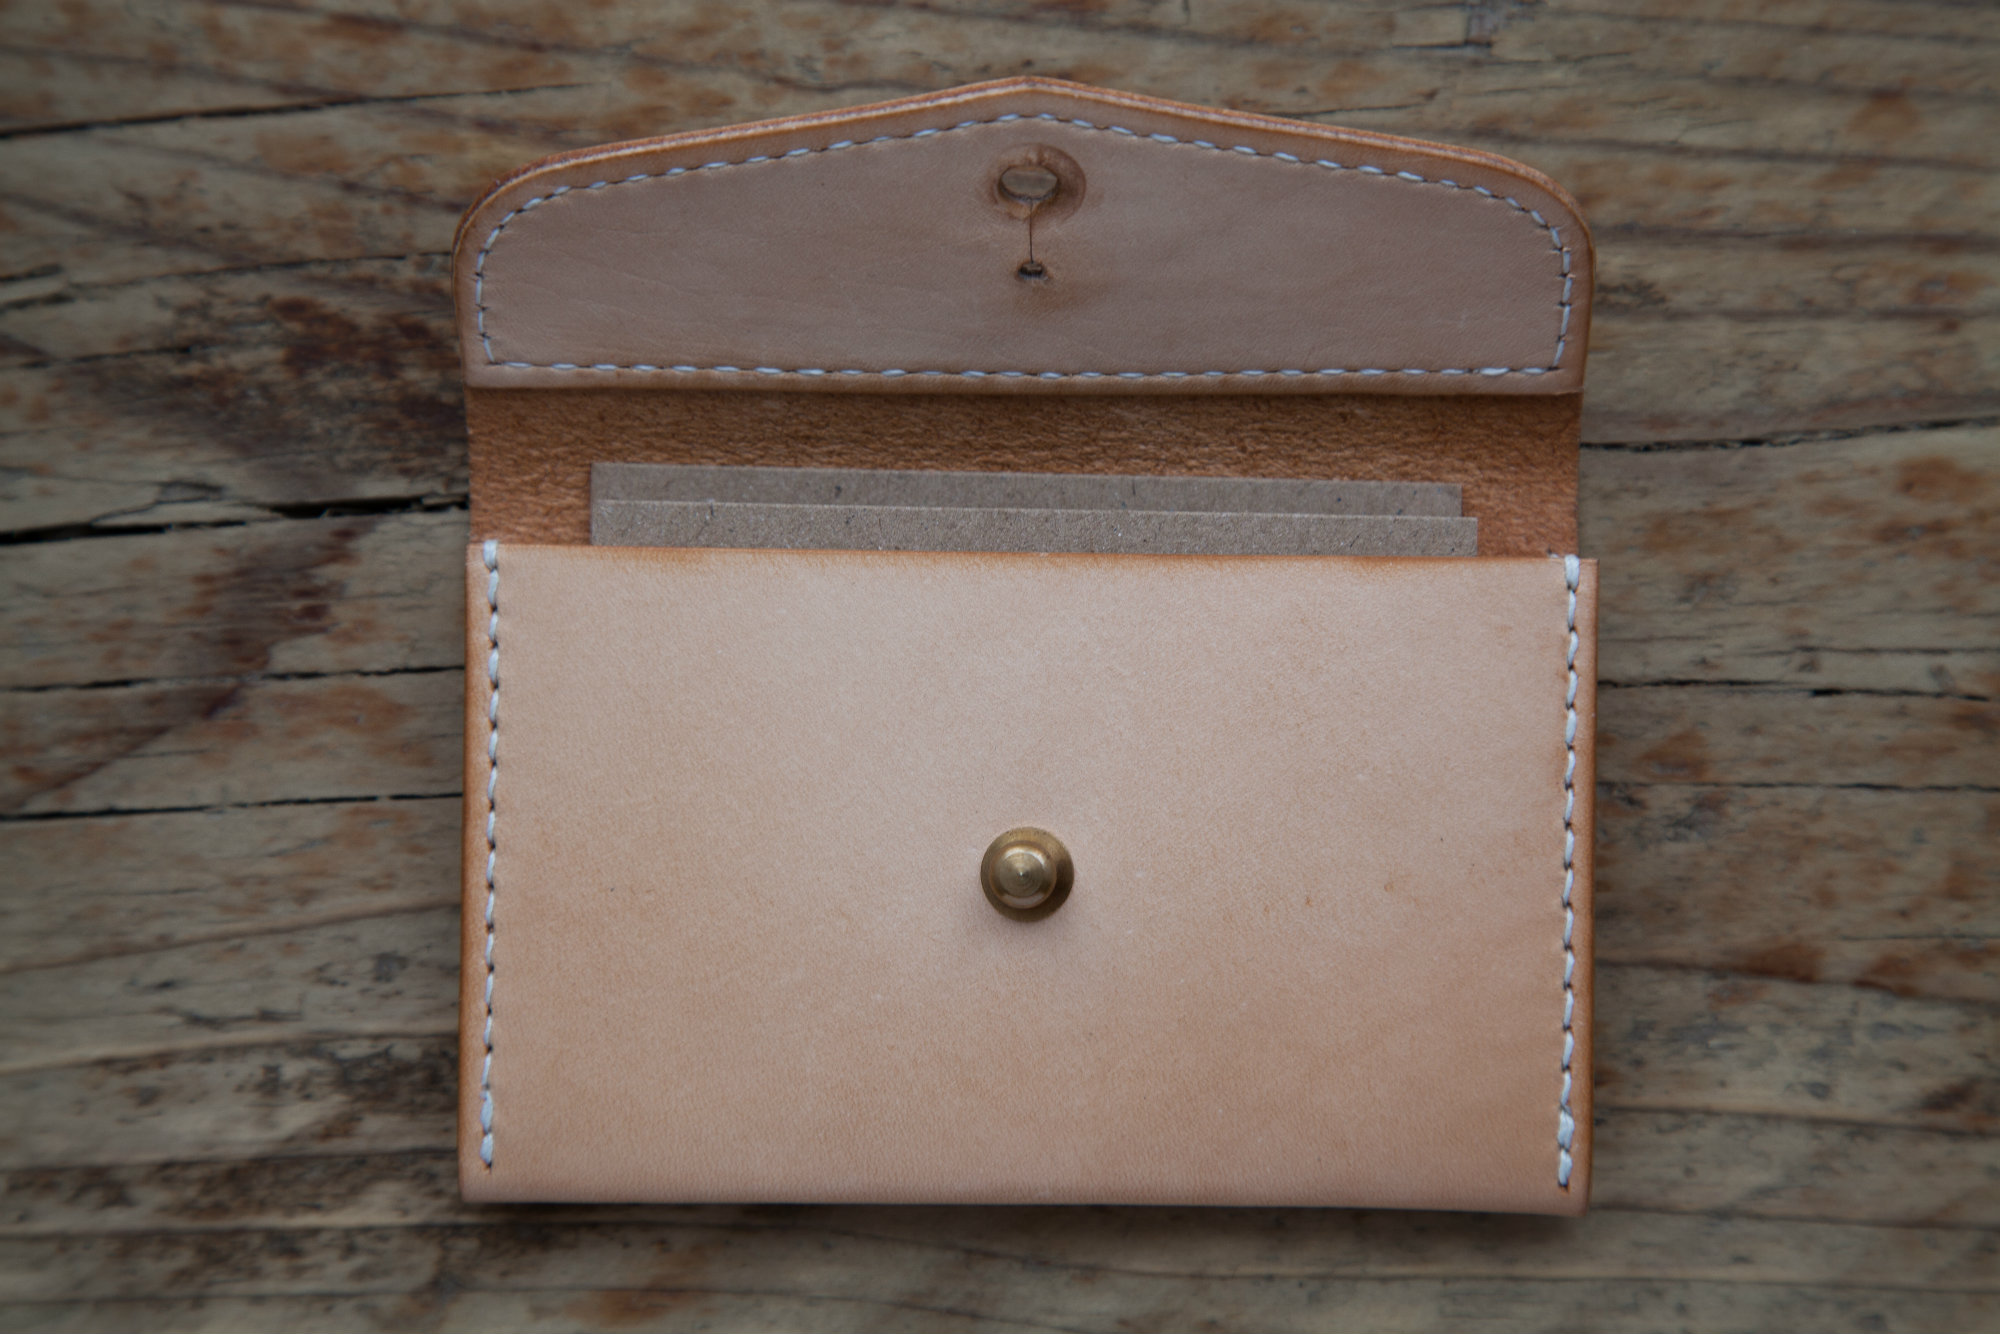 Mes_Leather_Products_084small.jpg